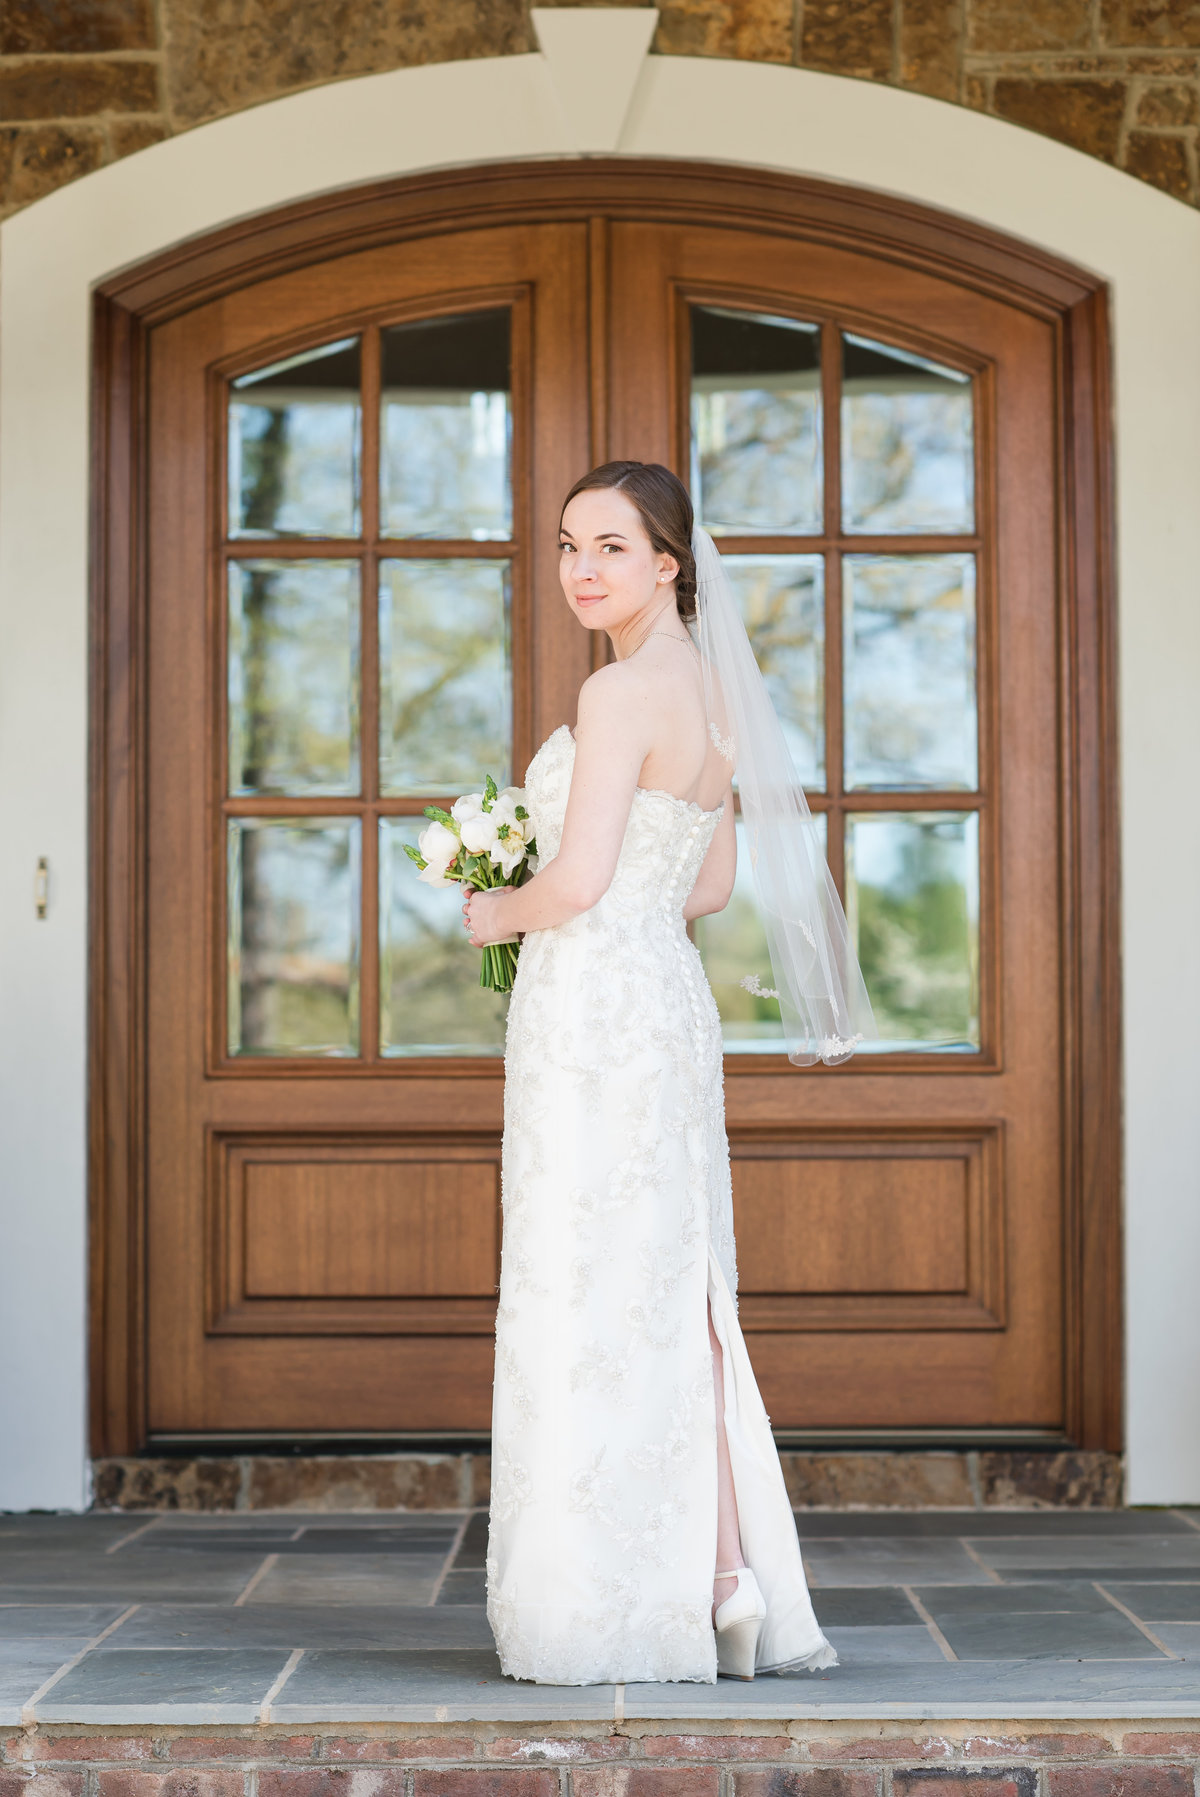 a bride wearing a laced strapless dress with no train with a mid-length veil standing on a gray bricked porch looking at the camera standing in front of a double wooden front door in Burlington